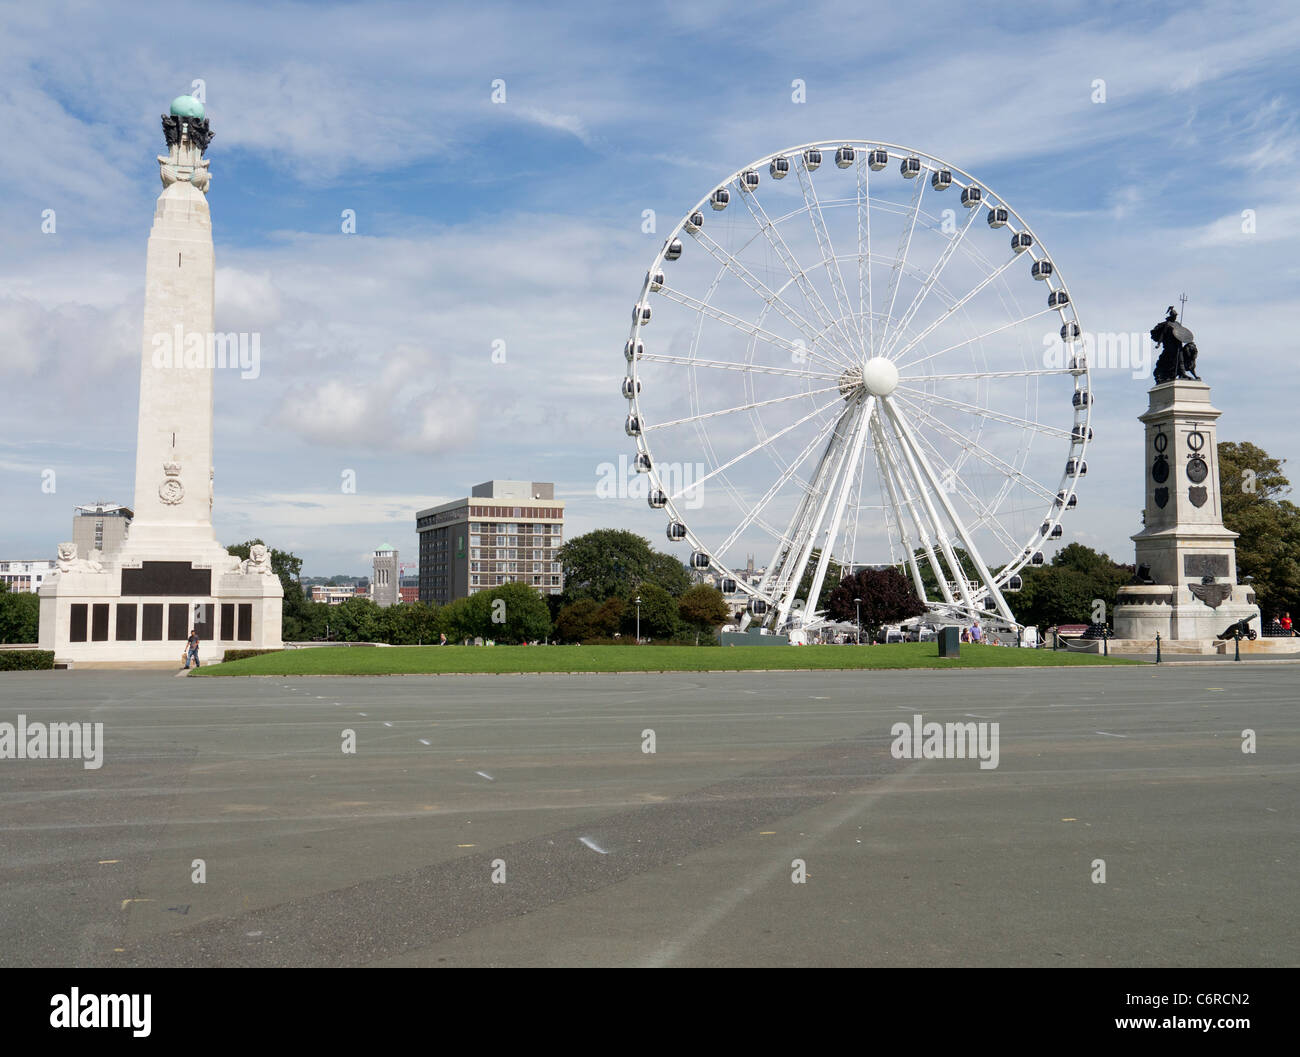 War memorials and the wheel of Plymouth, a 60 meter observation wheel on the Hoe. - Stock Image